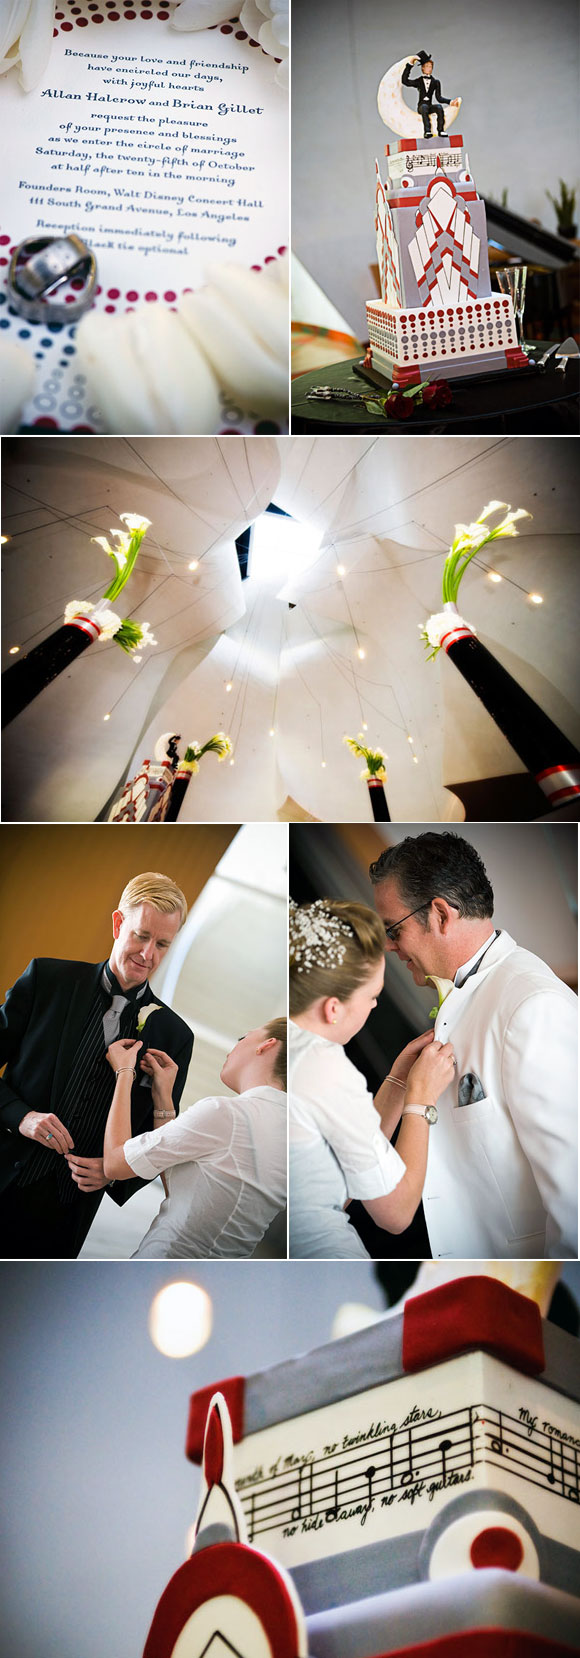 Real weddings - Allan & Brian - Bella Figura